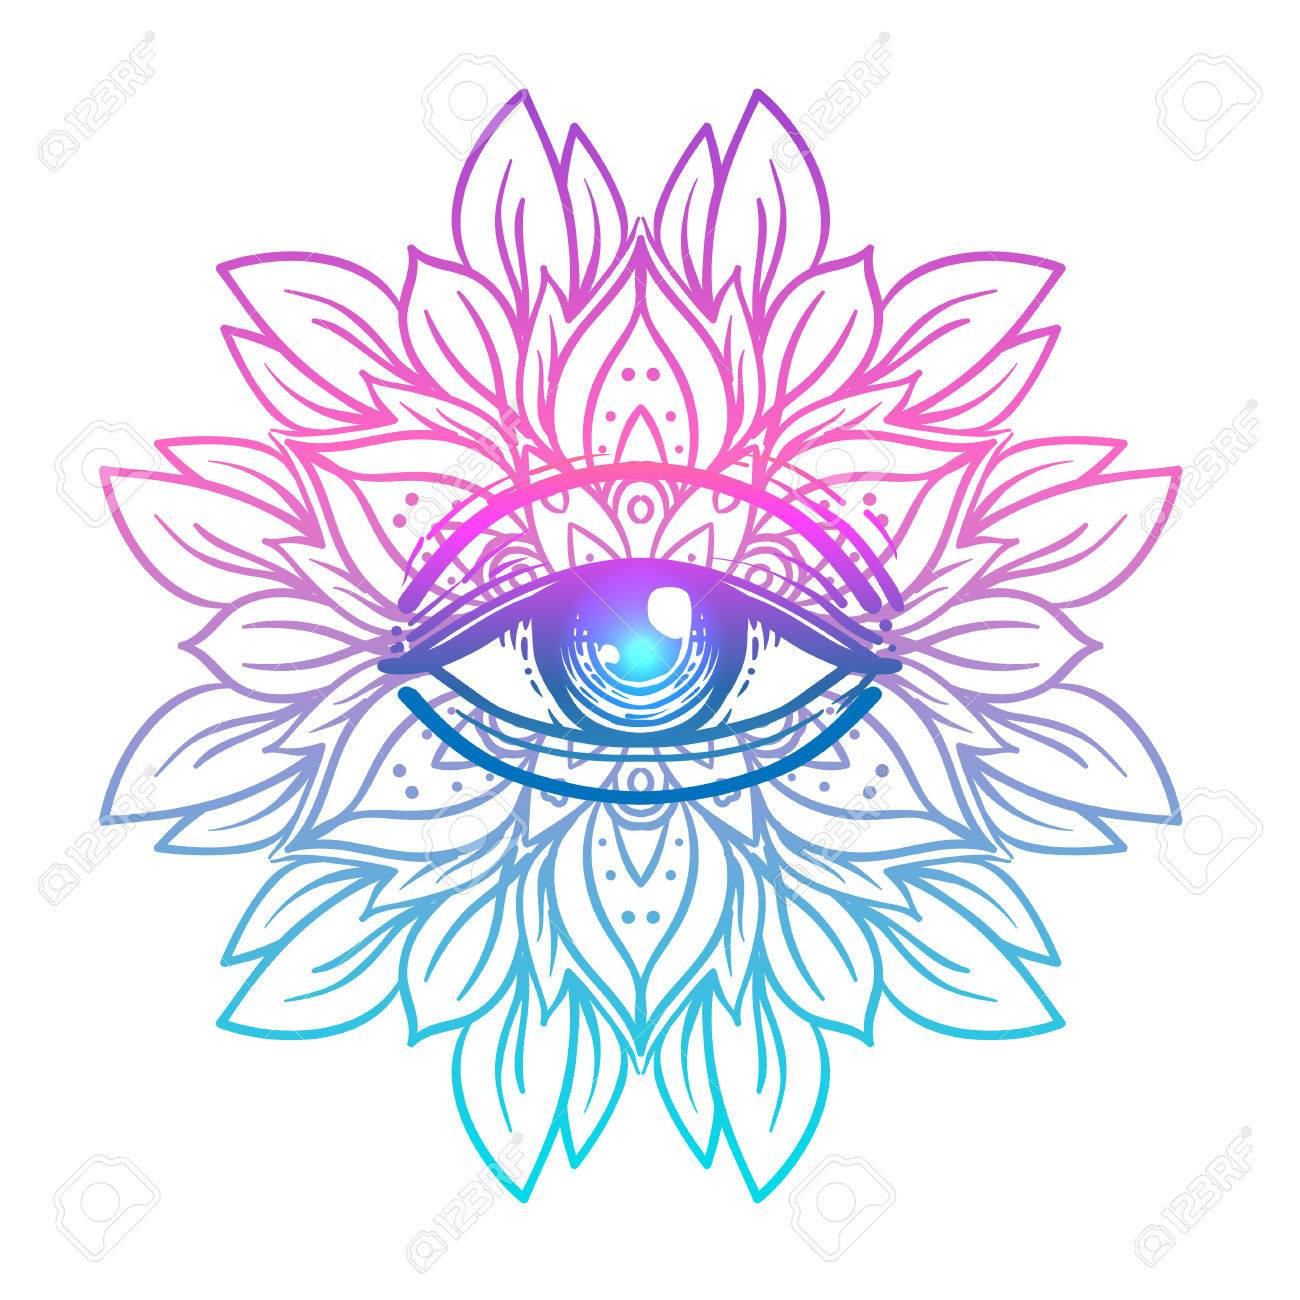 Sacred geometry symbol with all seeing eye in acid colors. Mystic, alchemy, occult concept. Design for indie music cover, t-shirt print, psychedelic poster, flyer. Astrology, esoteric, religion. - 78830670